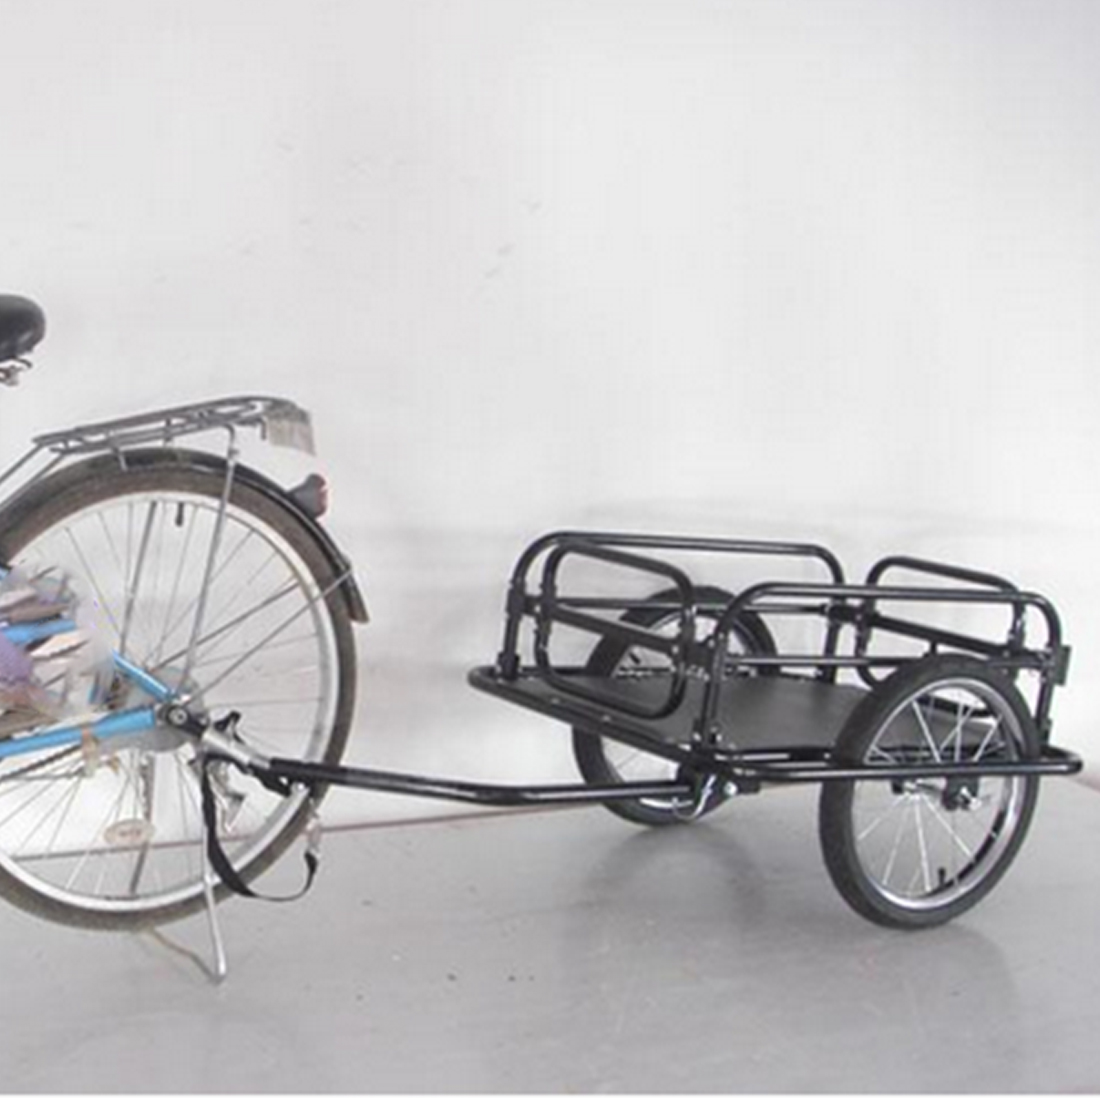 two wheel foldable bicycle bike trailer luggage barrow baggage car cargo  trailer Sporting Goods Cycling Bicycle Accessories